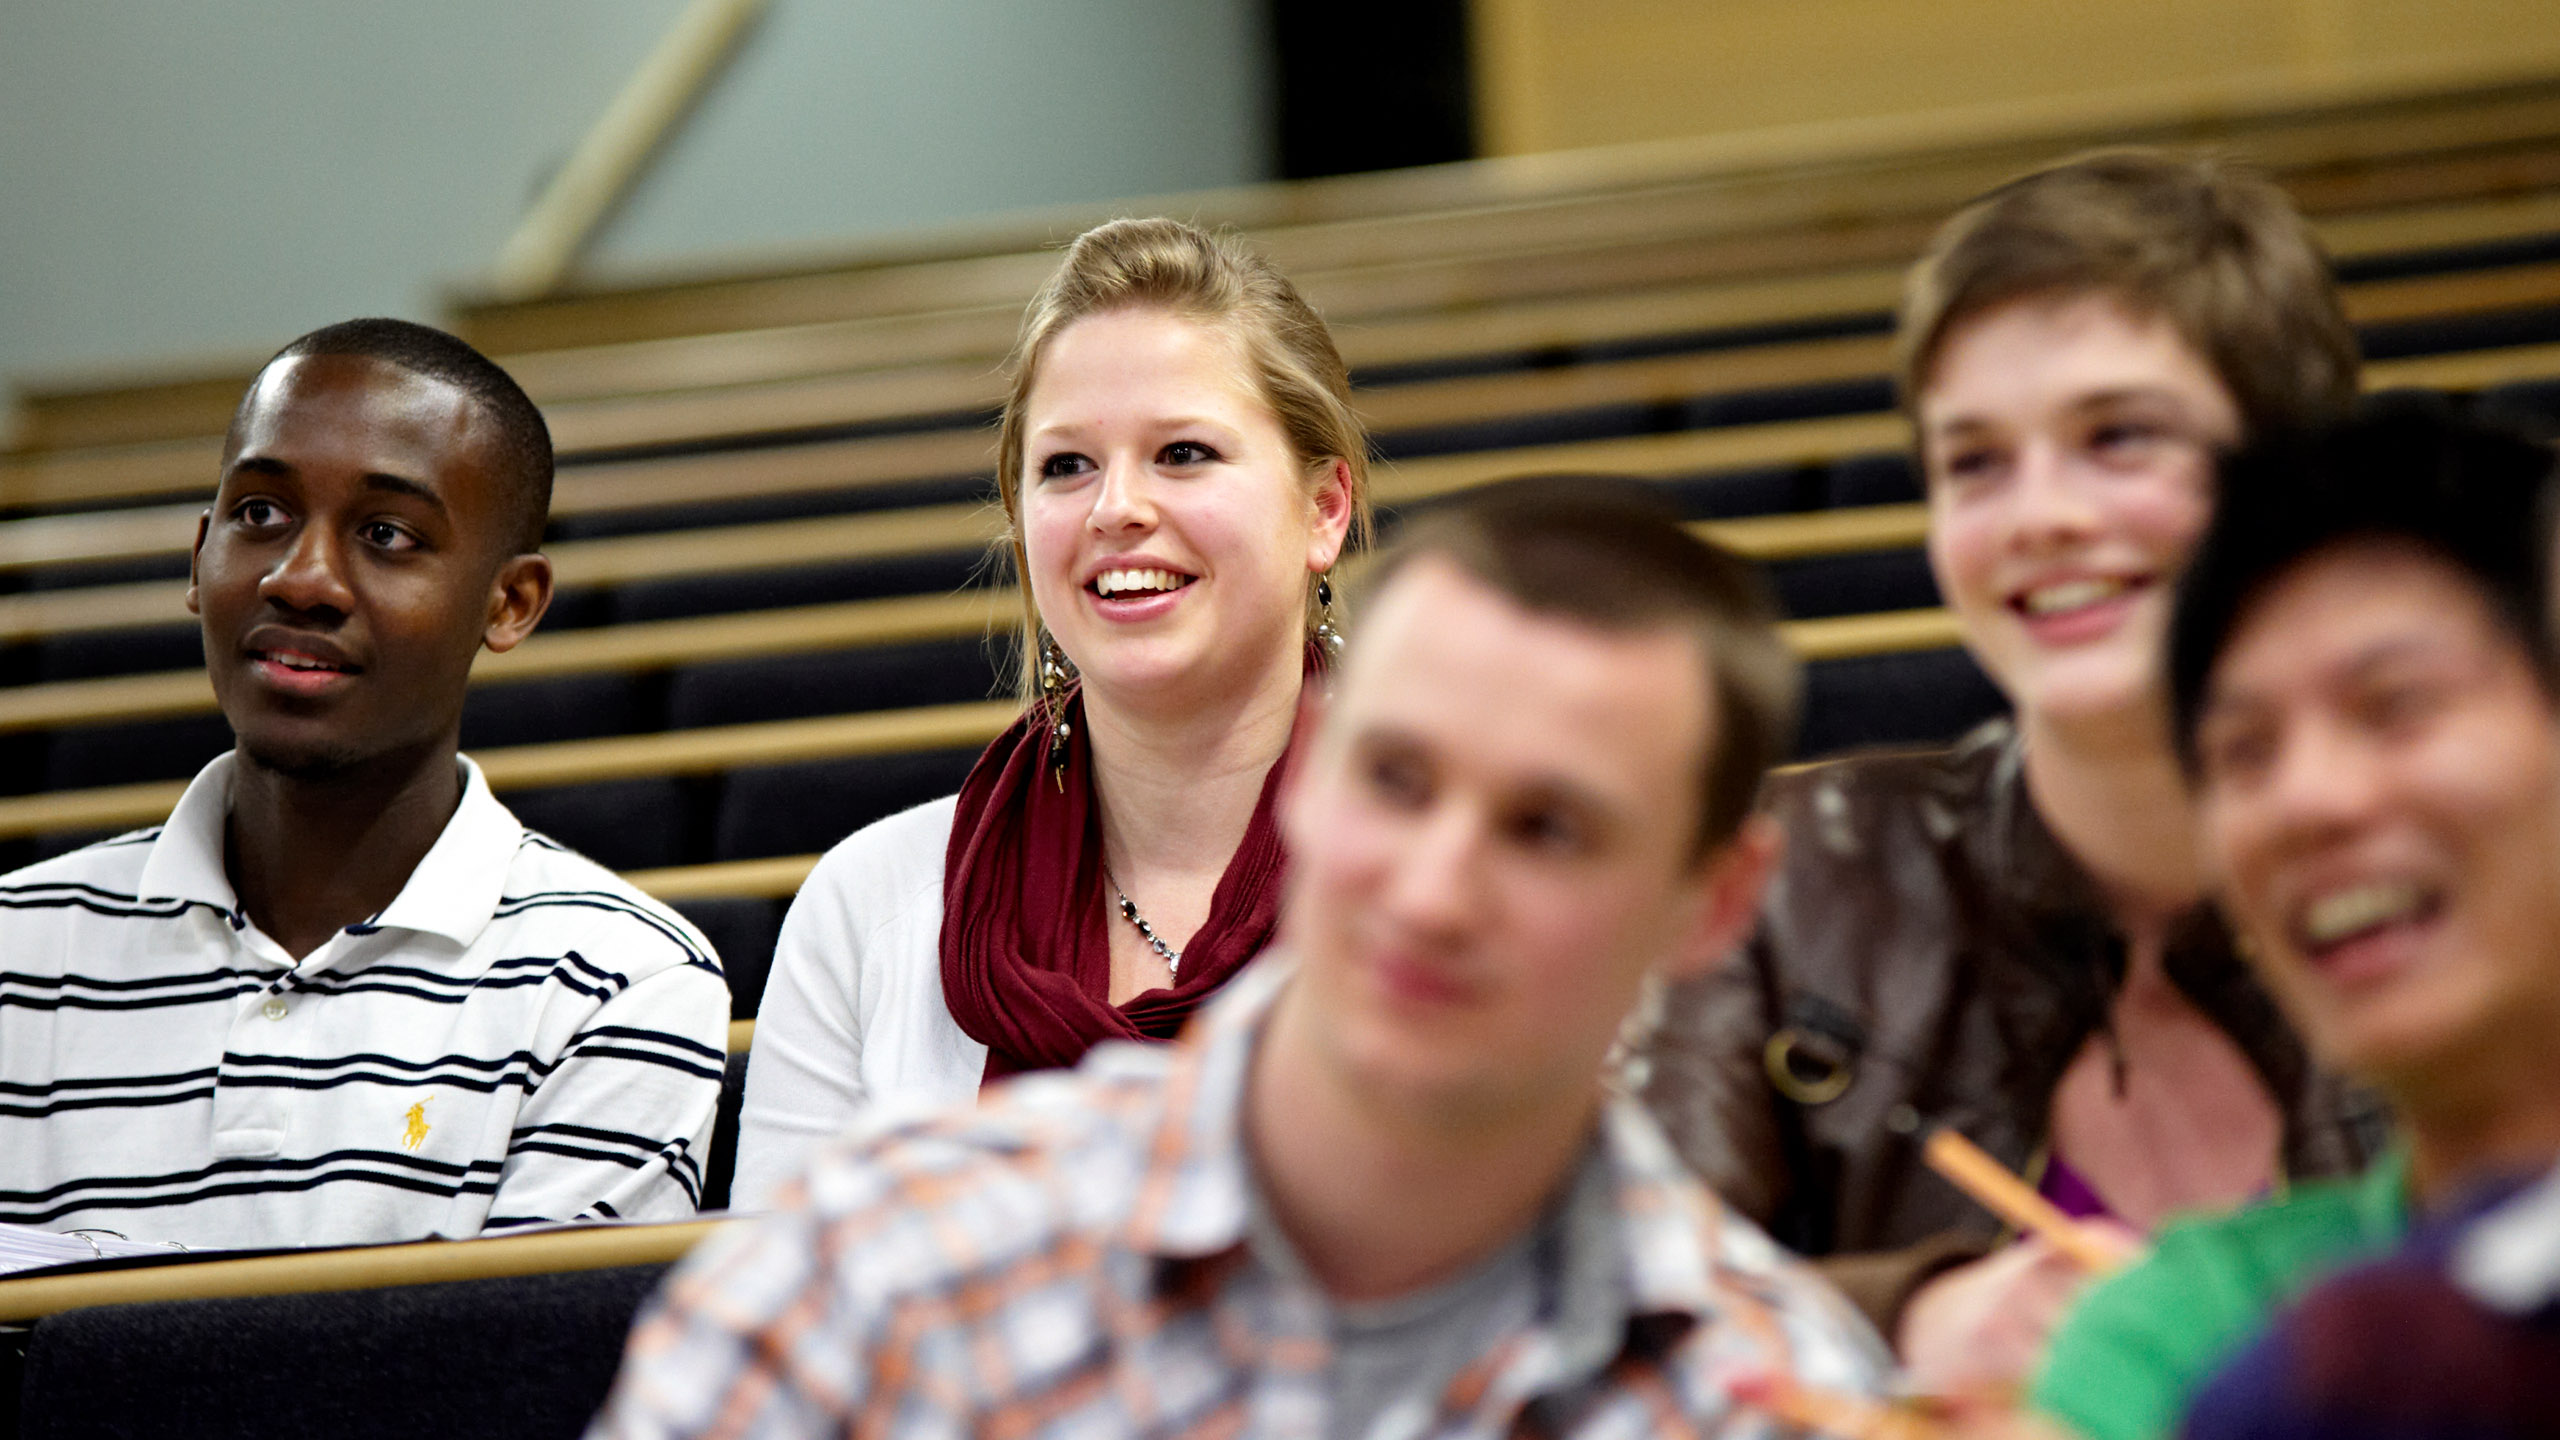 Students laughing in a lecture hall